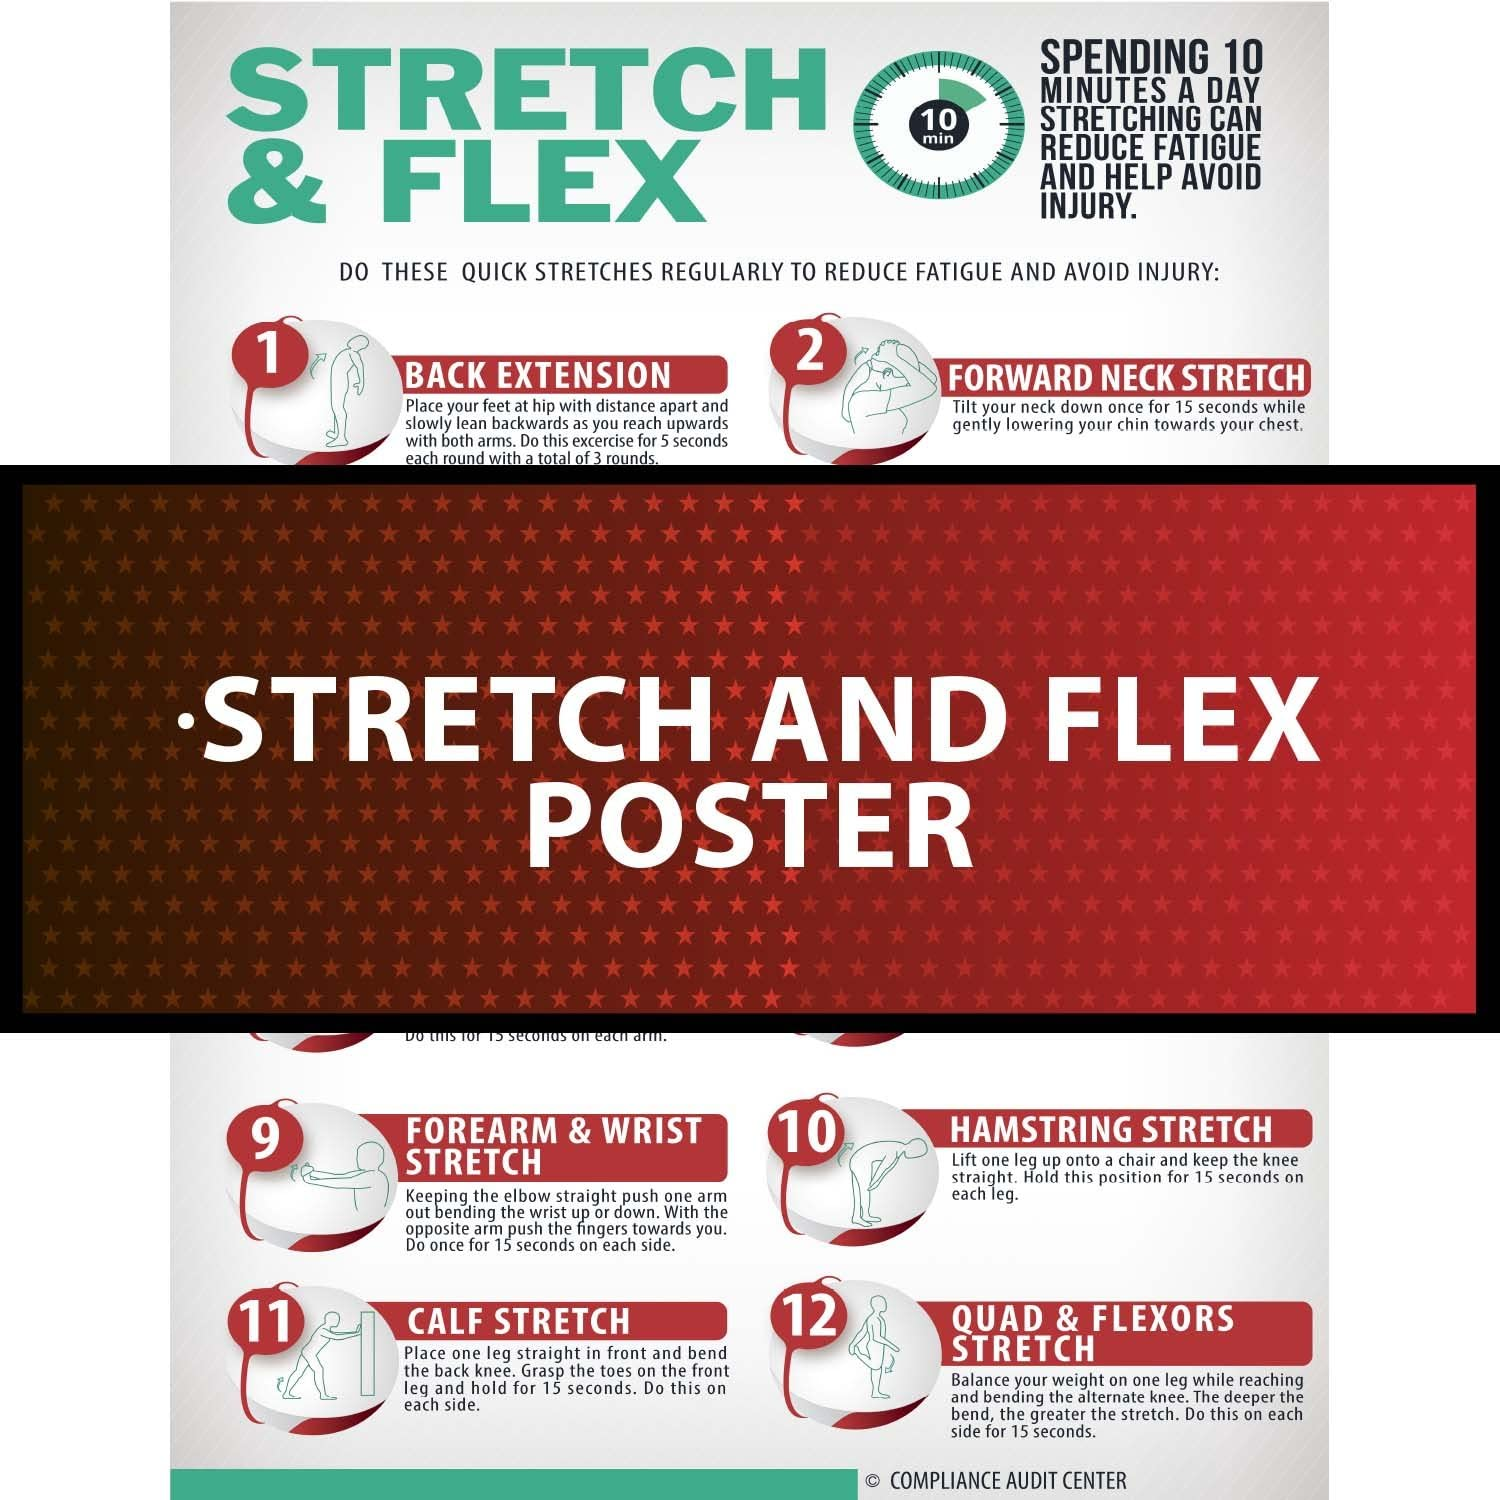 Fashion Stretch Flex Poster Exercise Manufacturer direct delivery for Emp Employees Workplace Guide